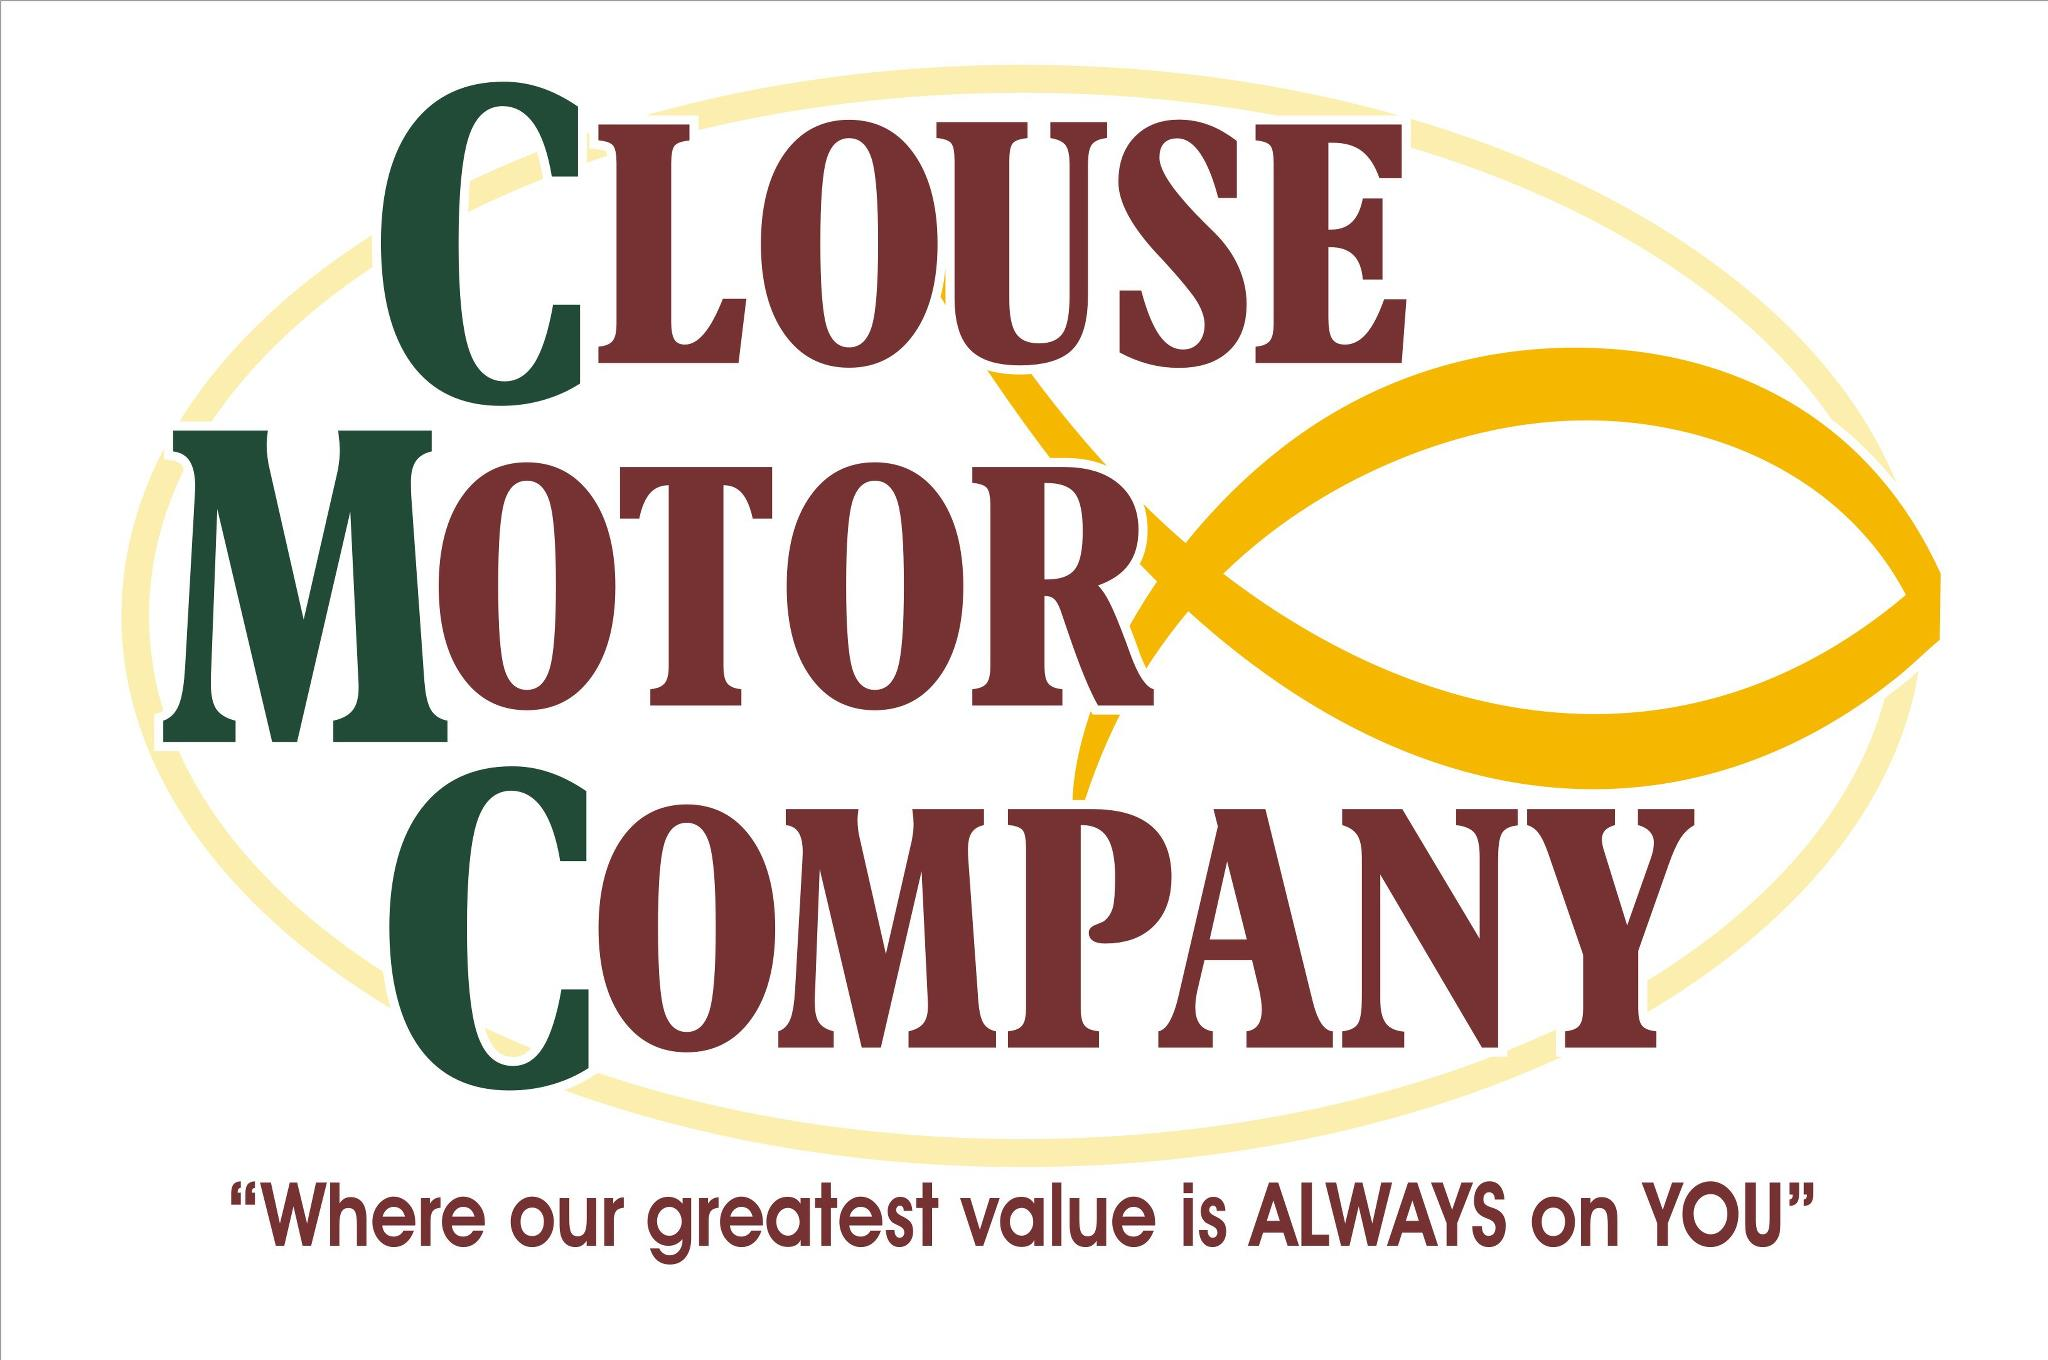 Clouse Motor Company, Inc